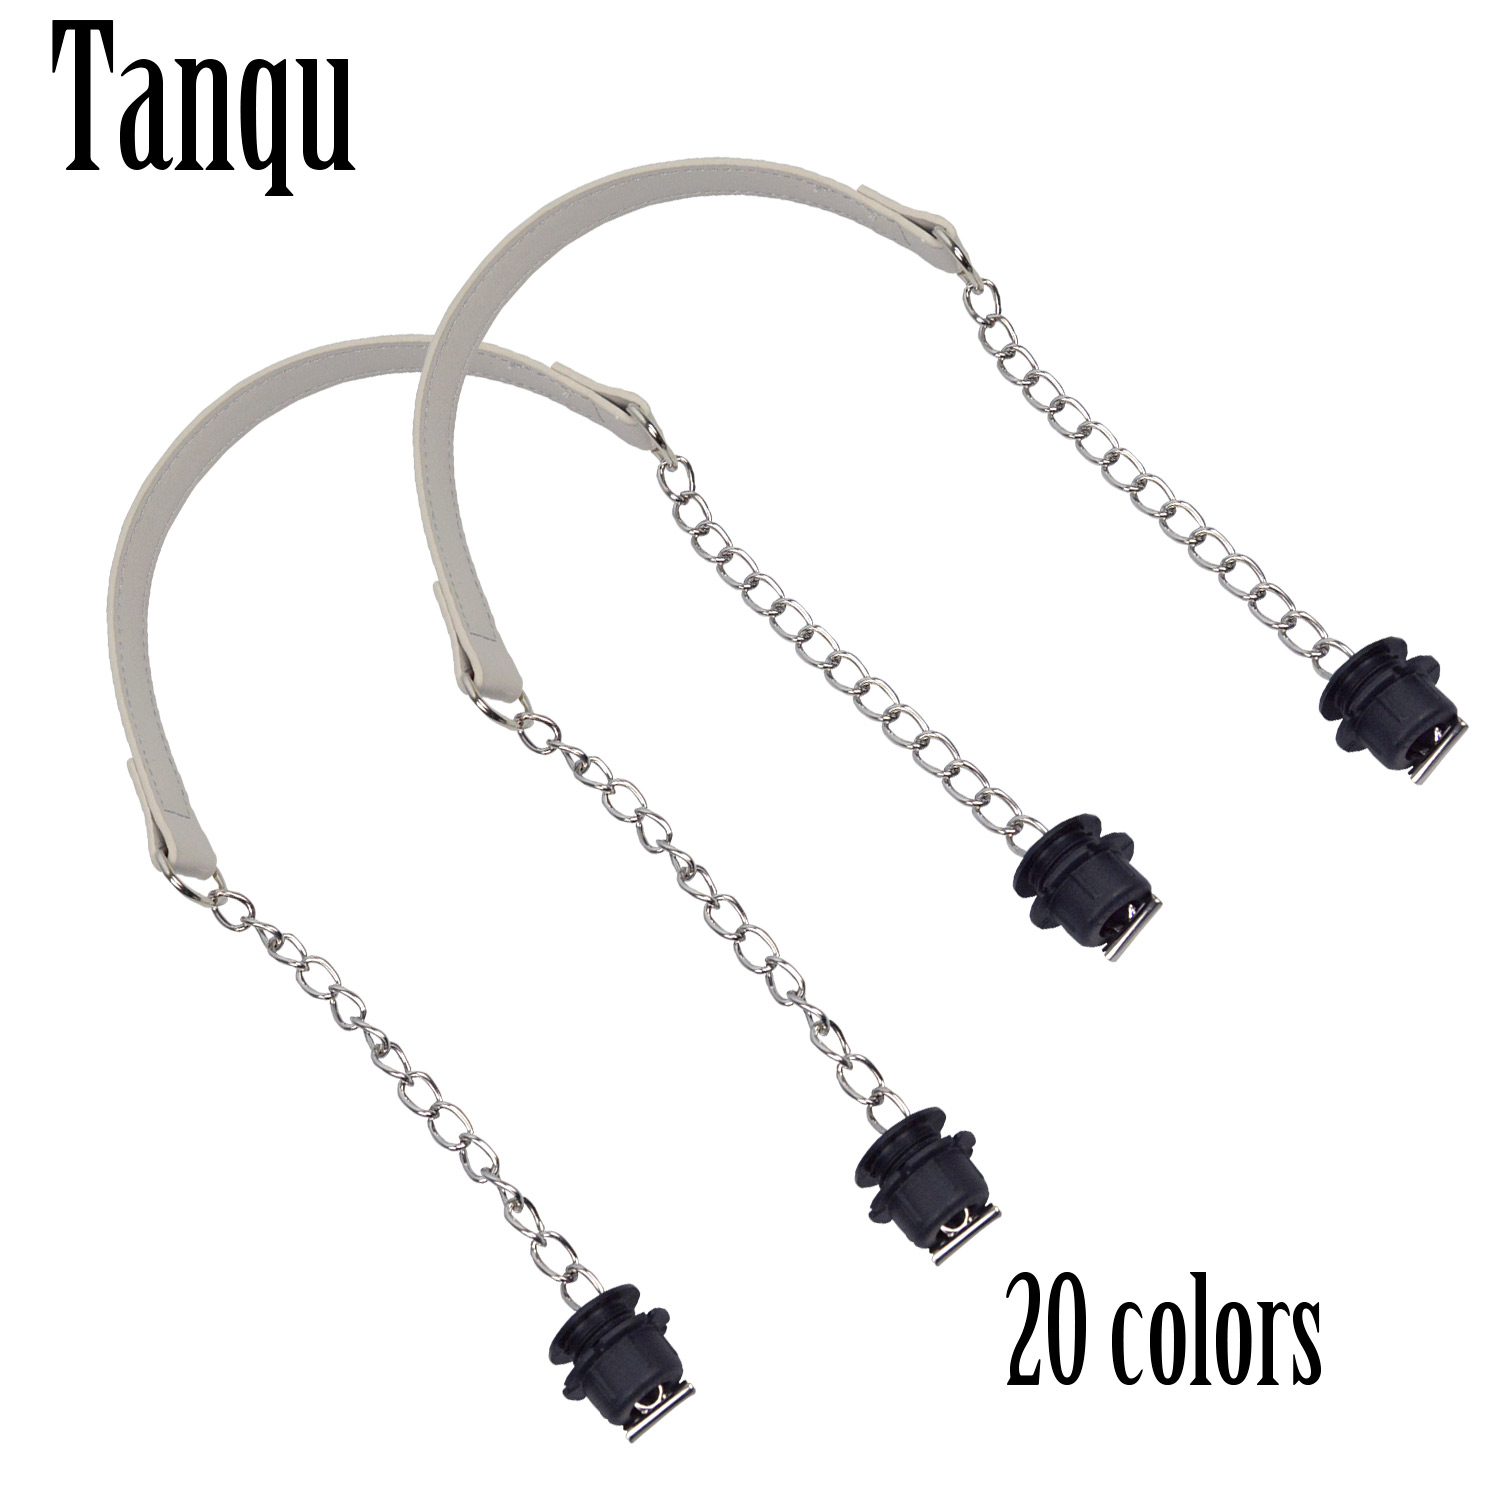 New Tanqu 1 Pair Silver Short Thick Single Chain With OT Metal Buckle Black Screws For Obag O Bag Handles For Women Bag Handbags